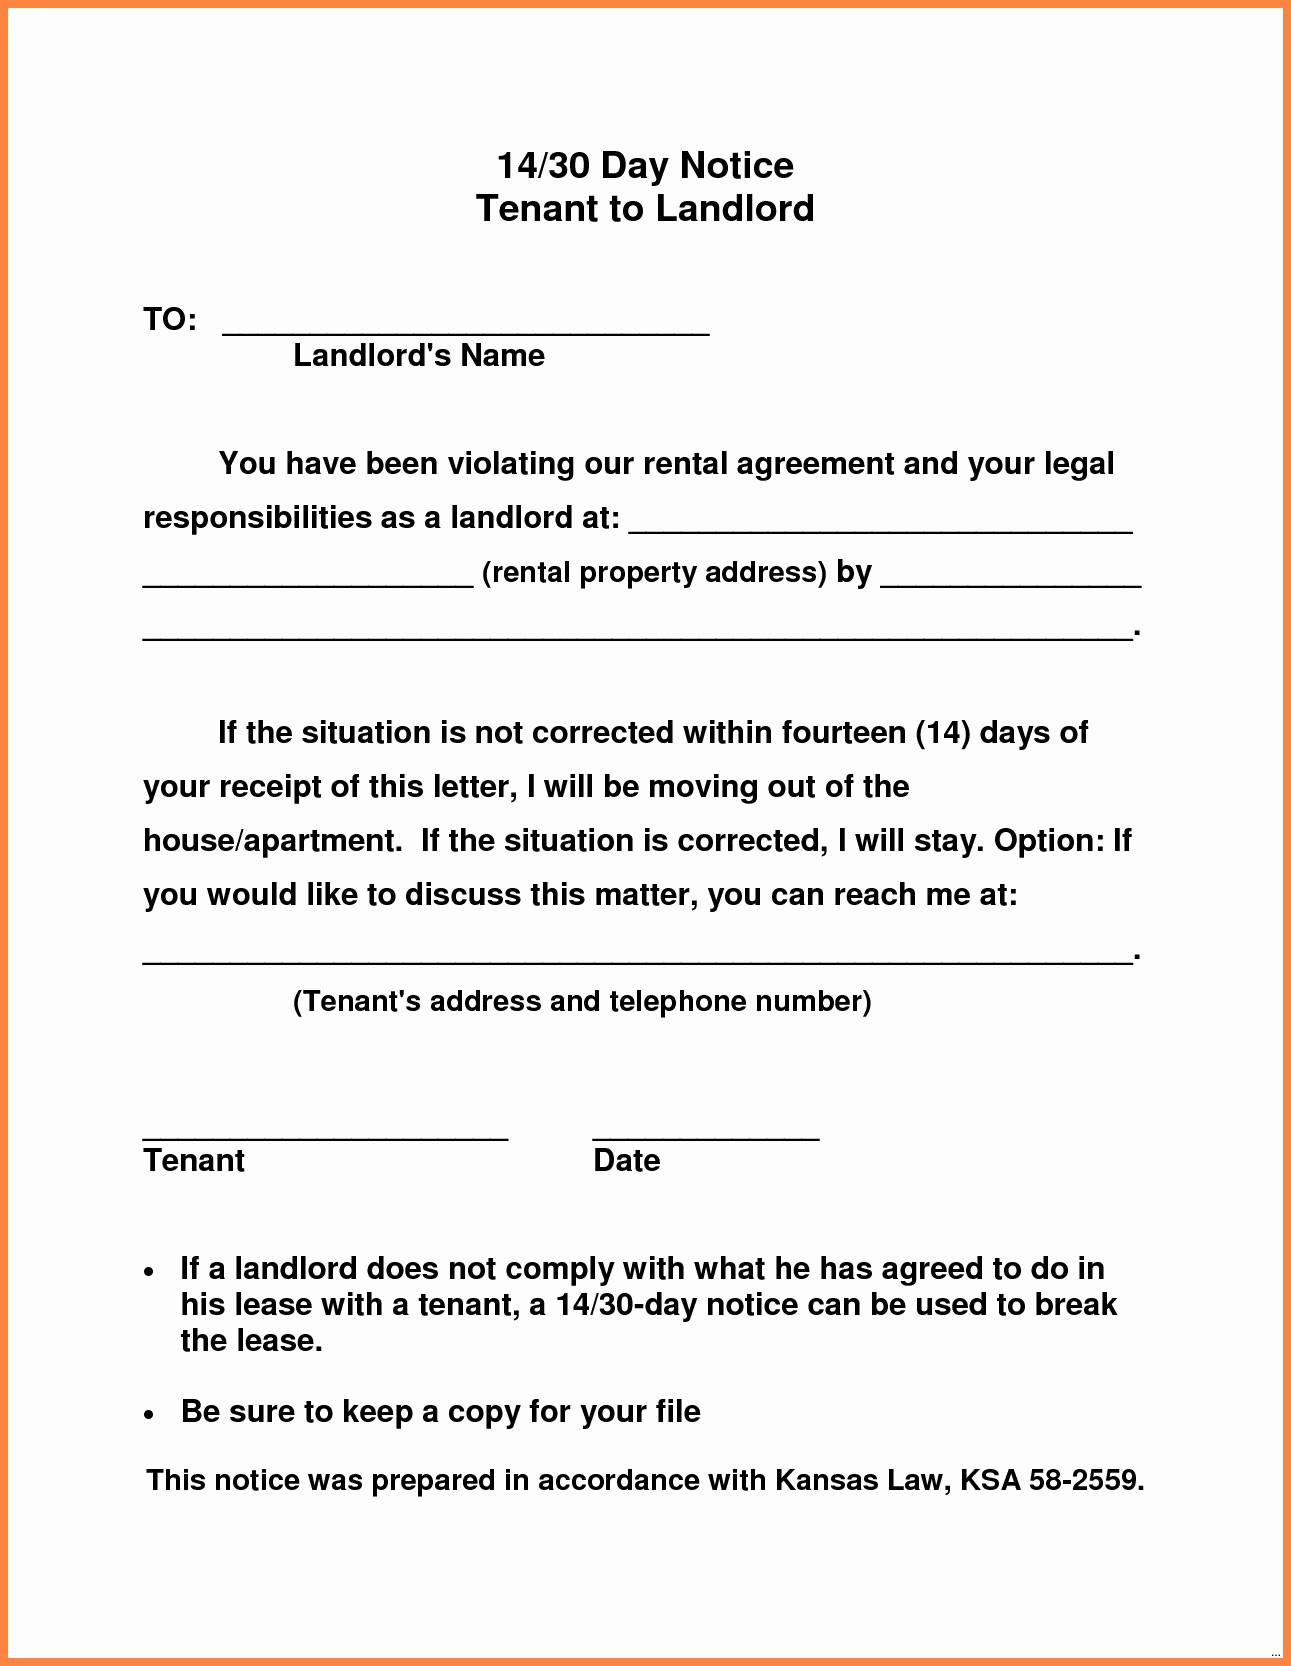 Landlord Notice Letter to Tenant Template - 30 Day Notice Template to Landlord Inspirational 20 Fresh